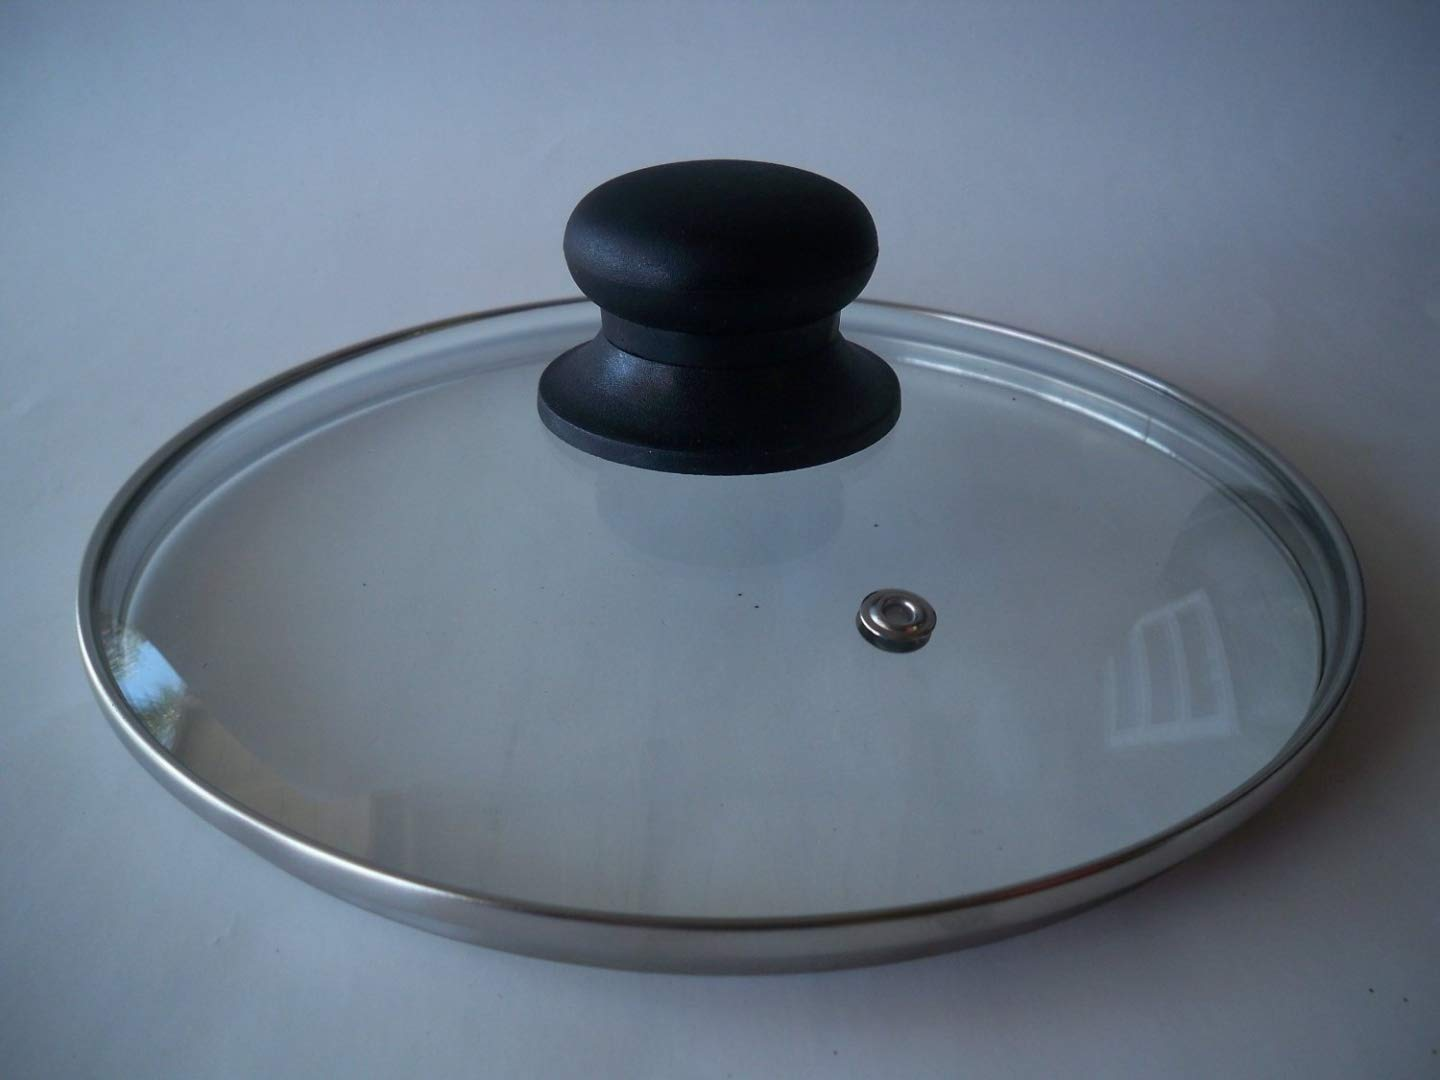 Amazon.com: Tempered Glass Lid for Pot & Pans with Vent Hole, 20 cm: Kitchen & Dining